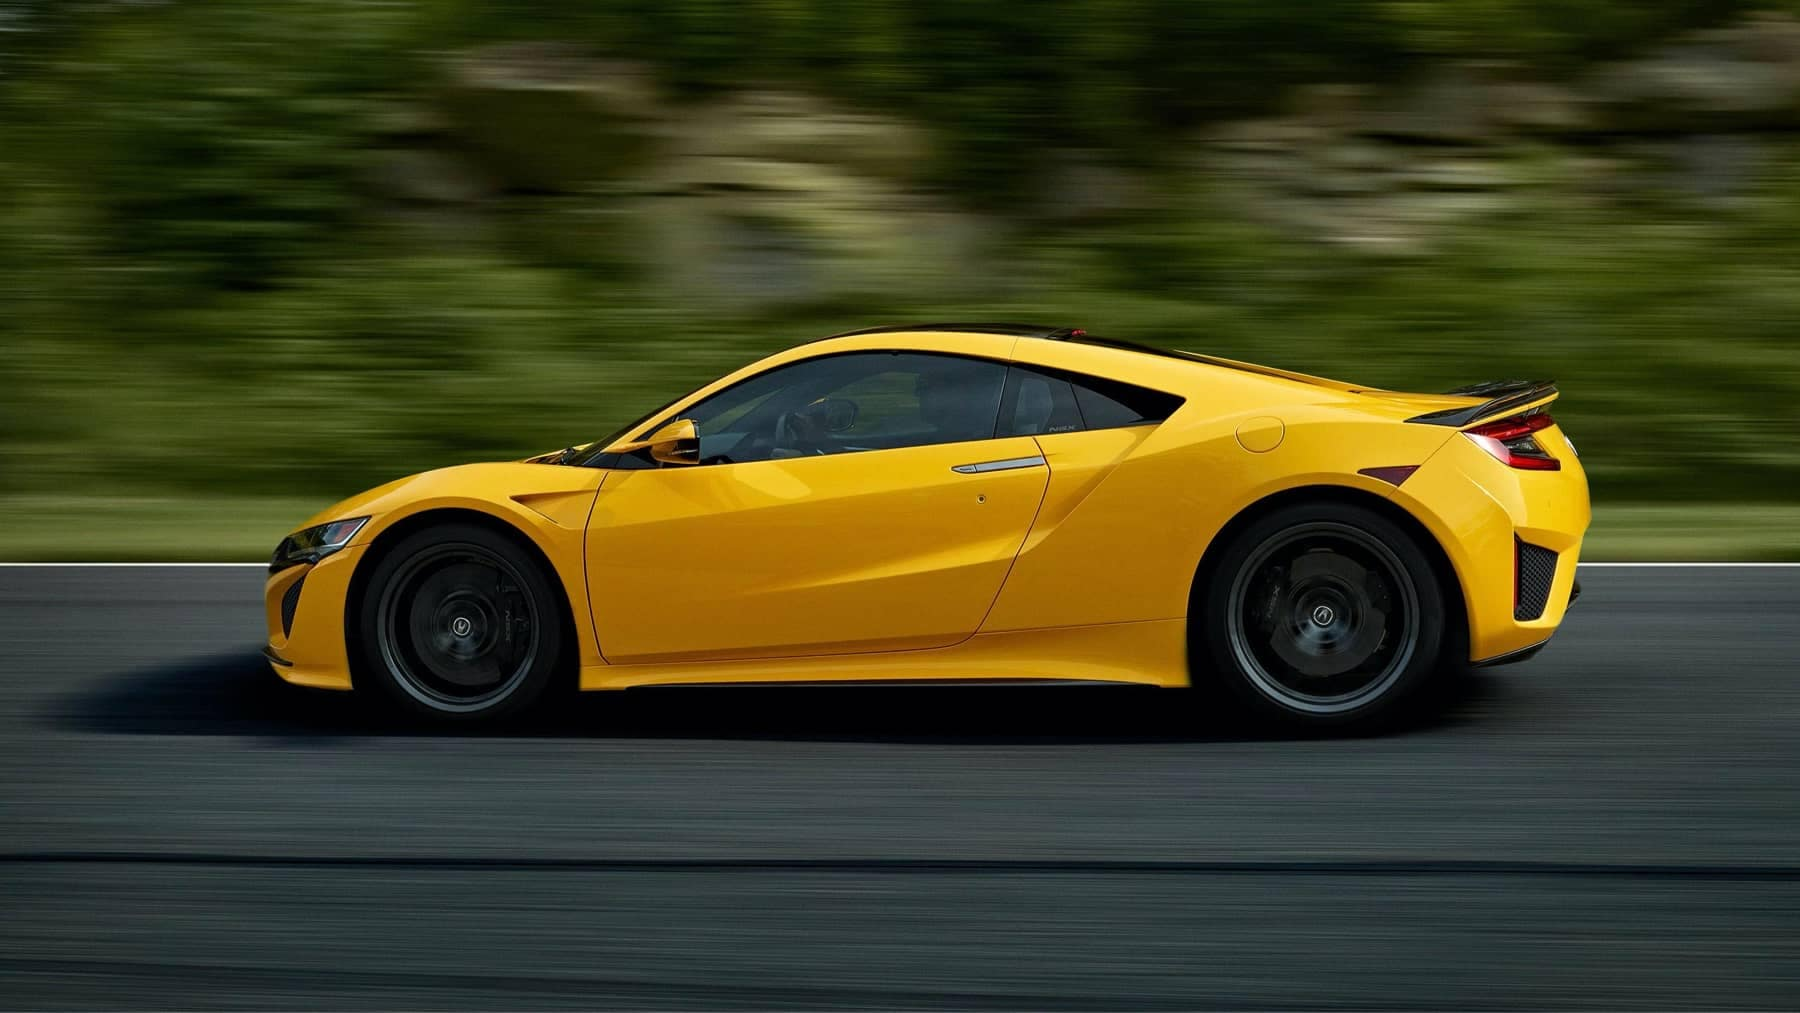 Acura-NSX-Indy-Yellow-Pearl-on-a-highway